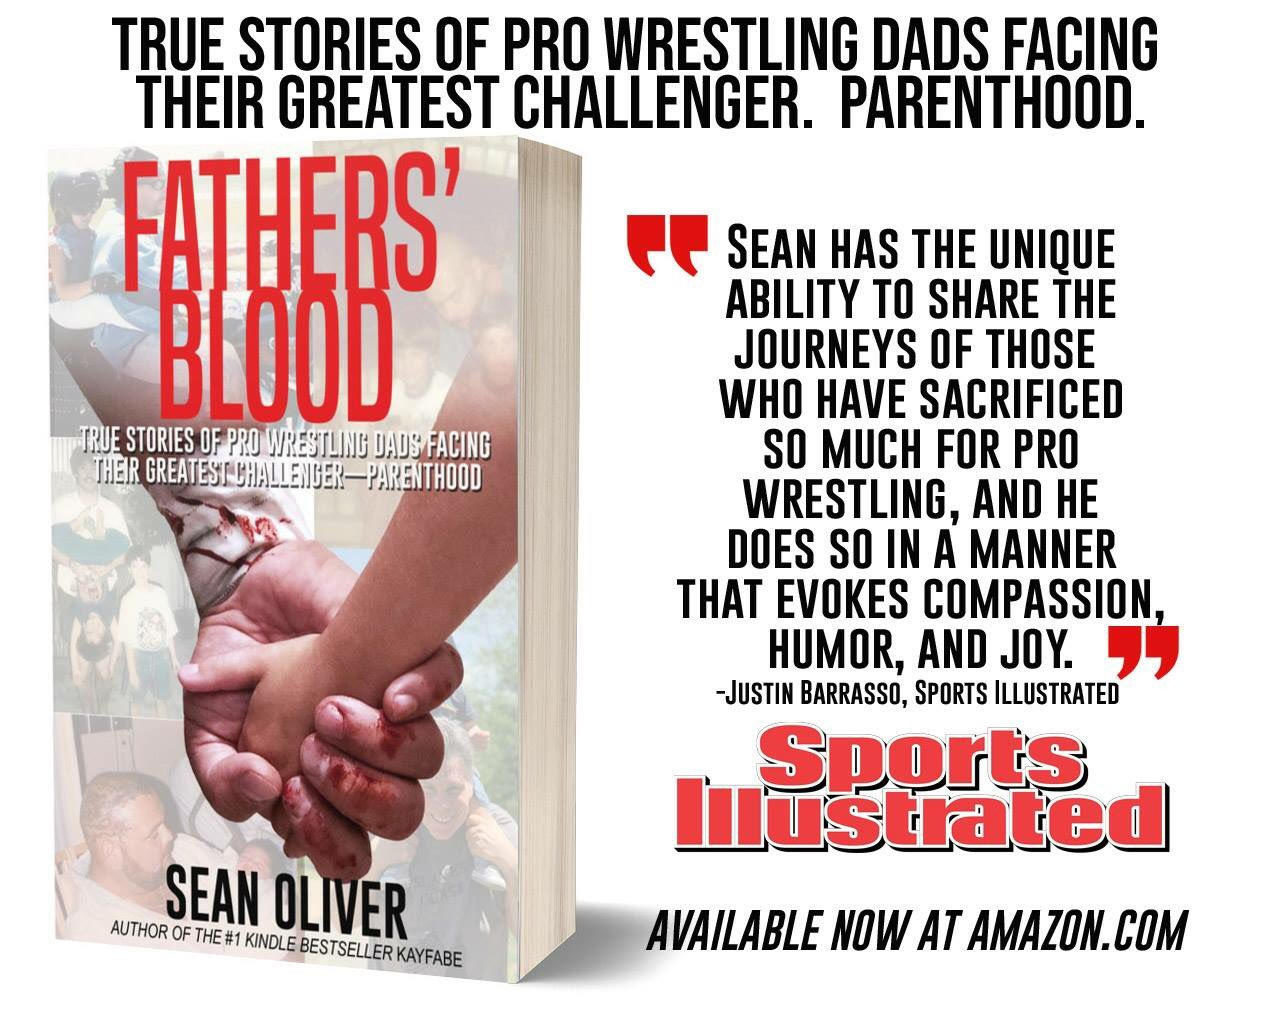 Sean Oliver - True stories of pro wrestling dads facing their greatest challenger - parenthood - book cover